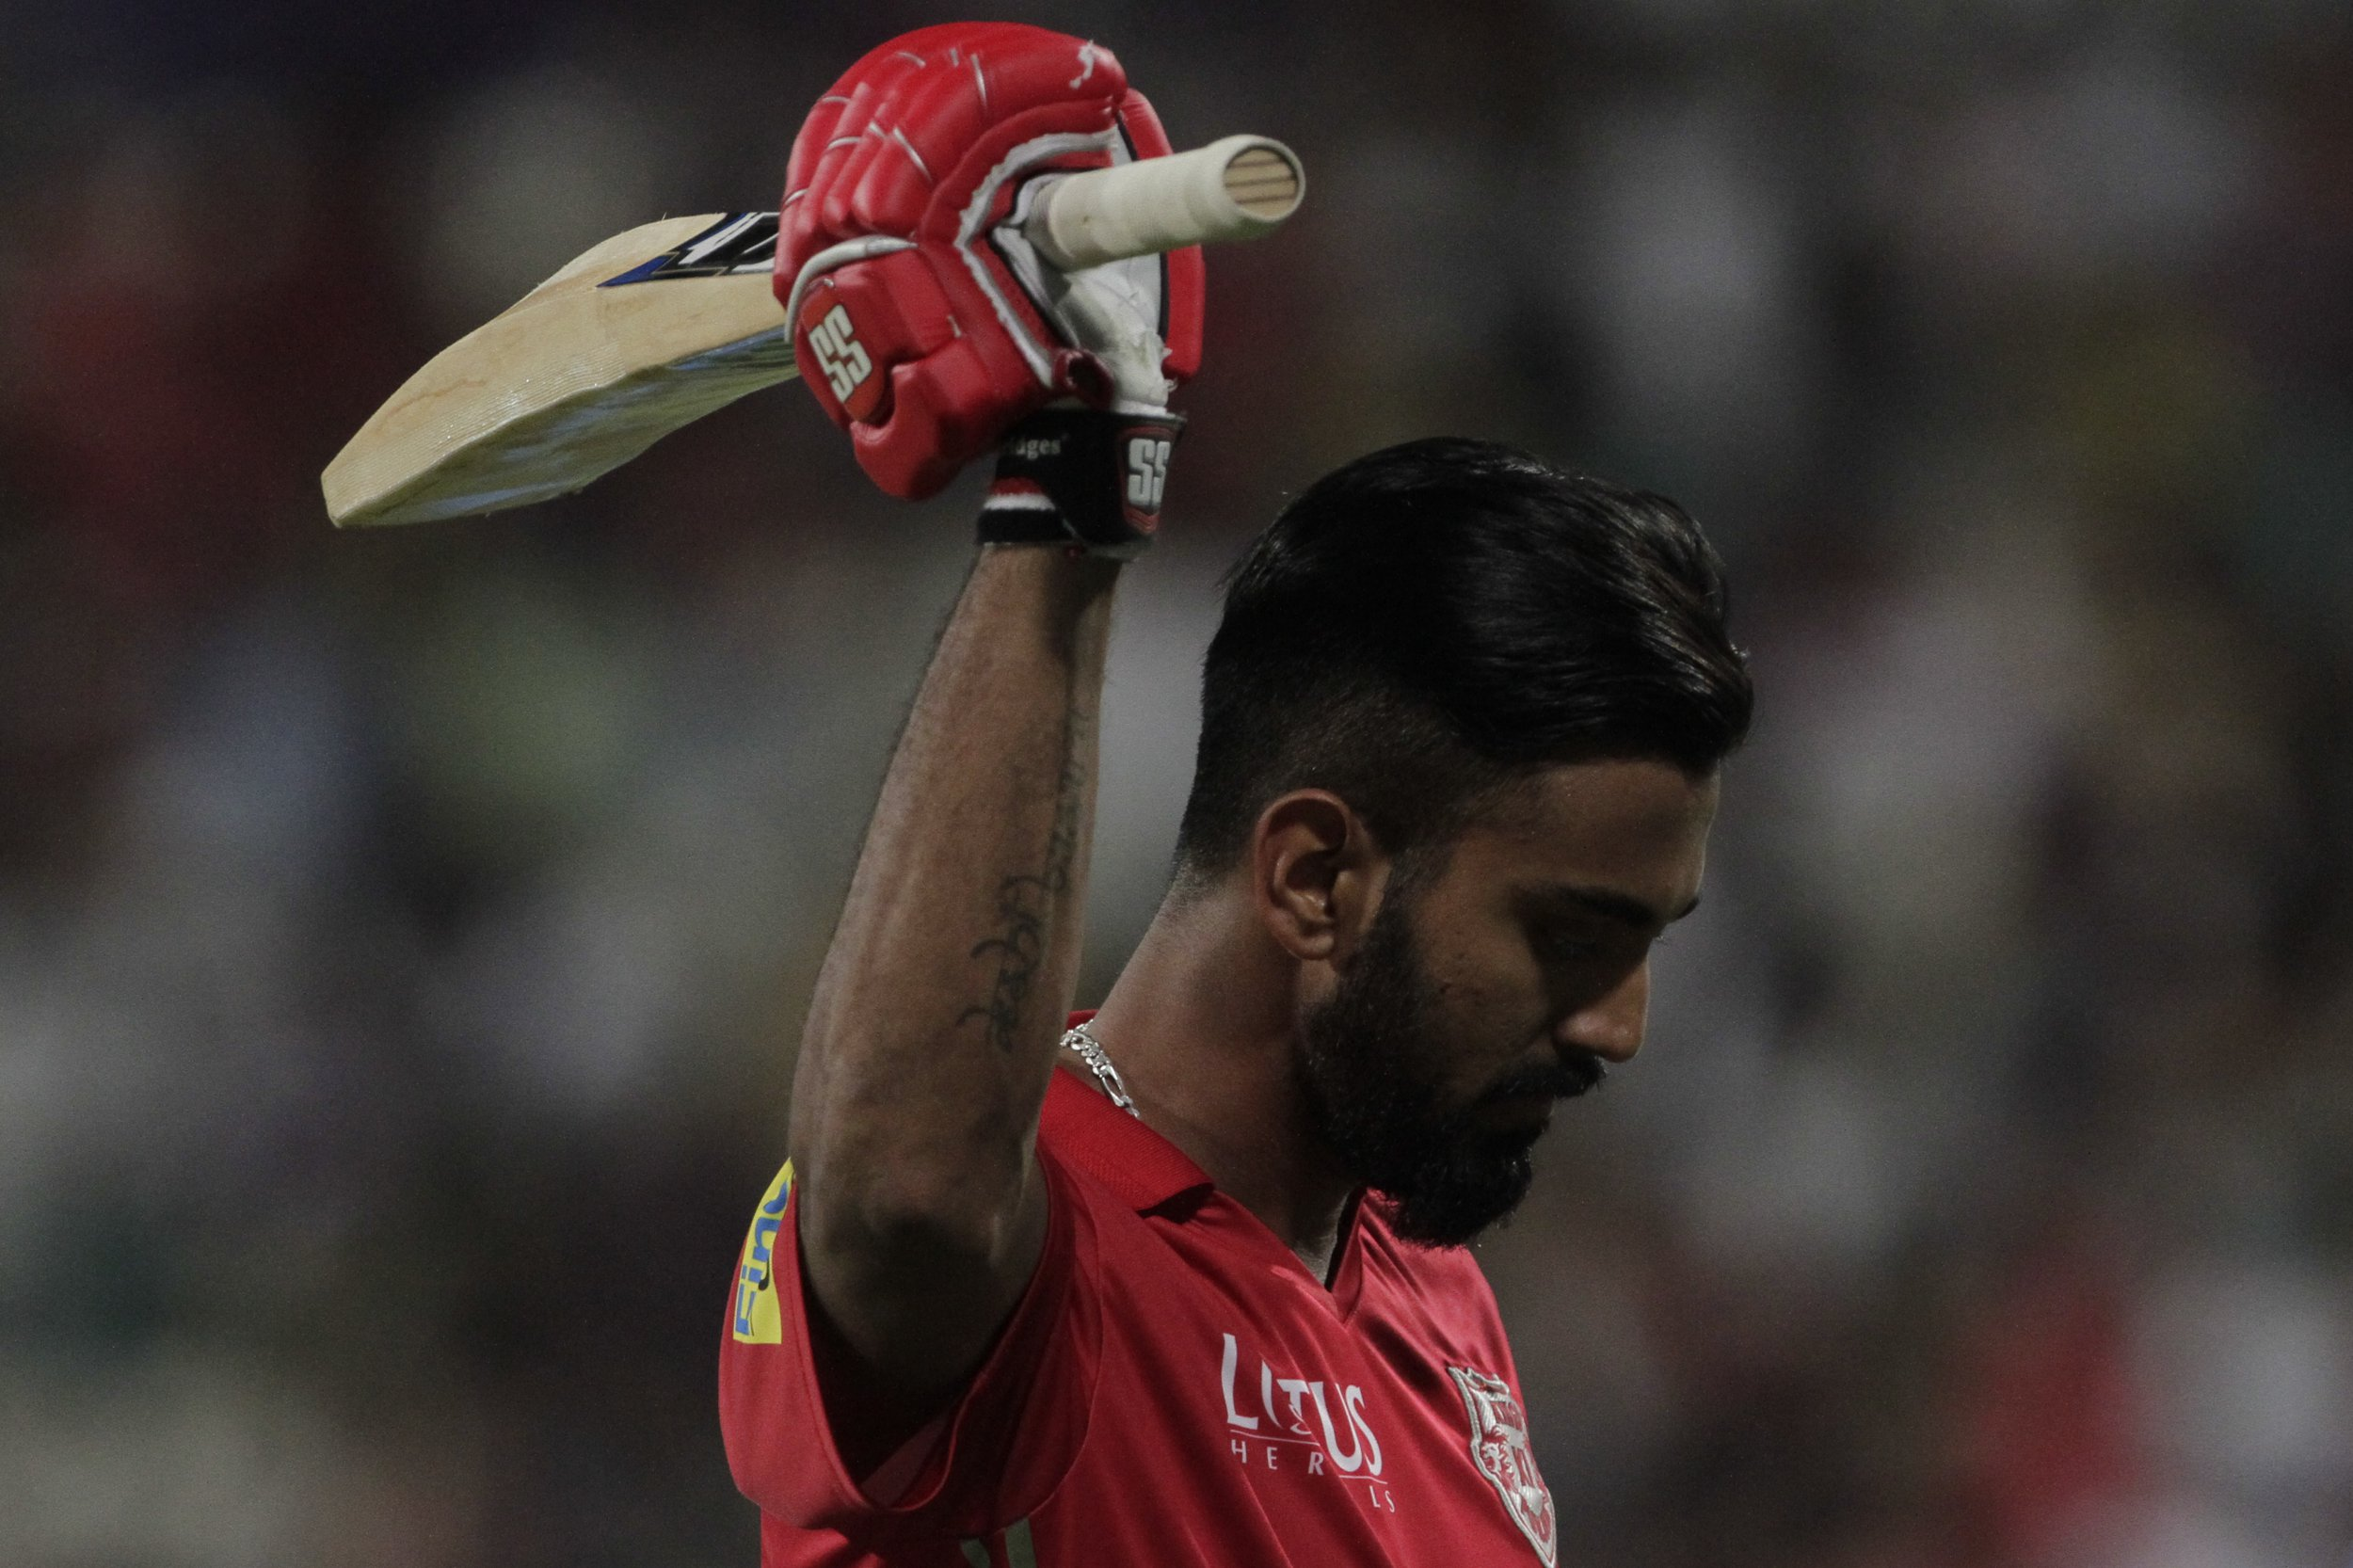 Kings XI Punjab v Kolkata Knight Riders betting preview: Ignore Chris Gayle and find value in KL Rahul